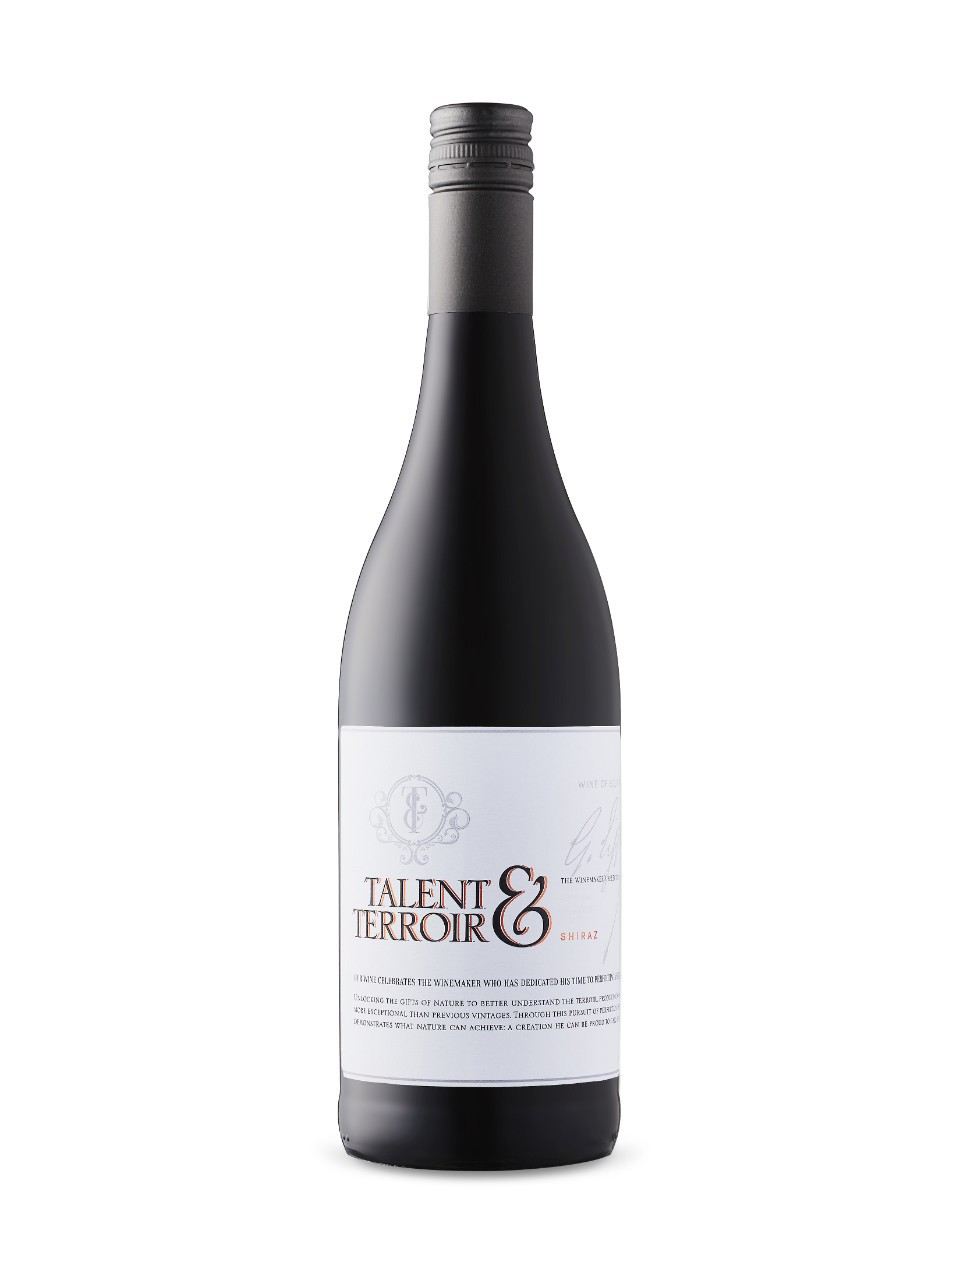 Shiraz Talent & Terroir Boland Cellar 2015